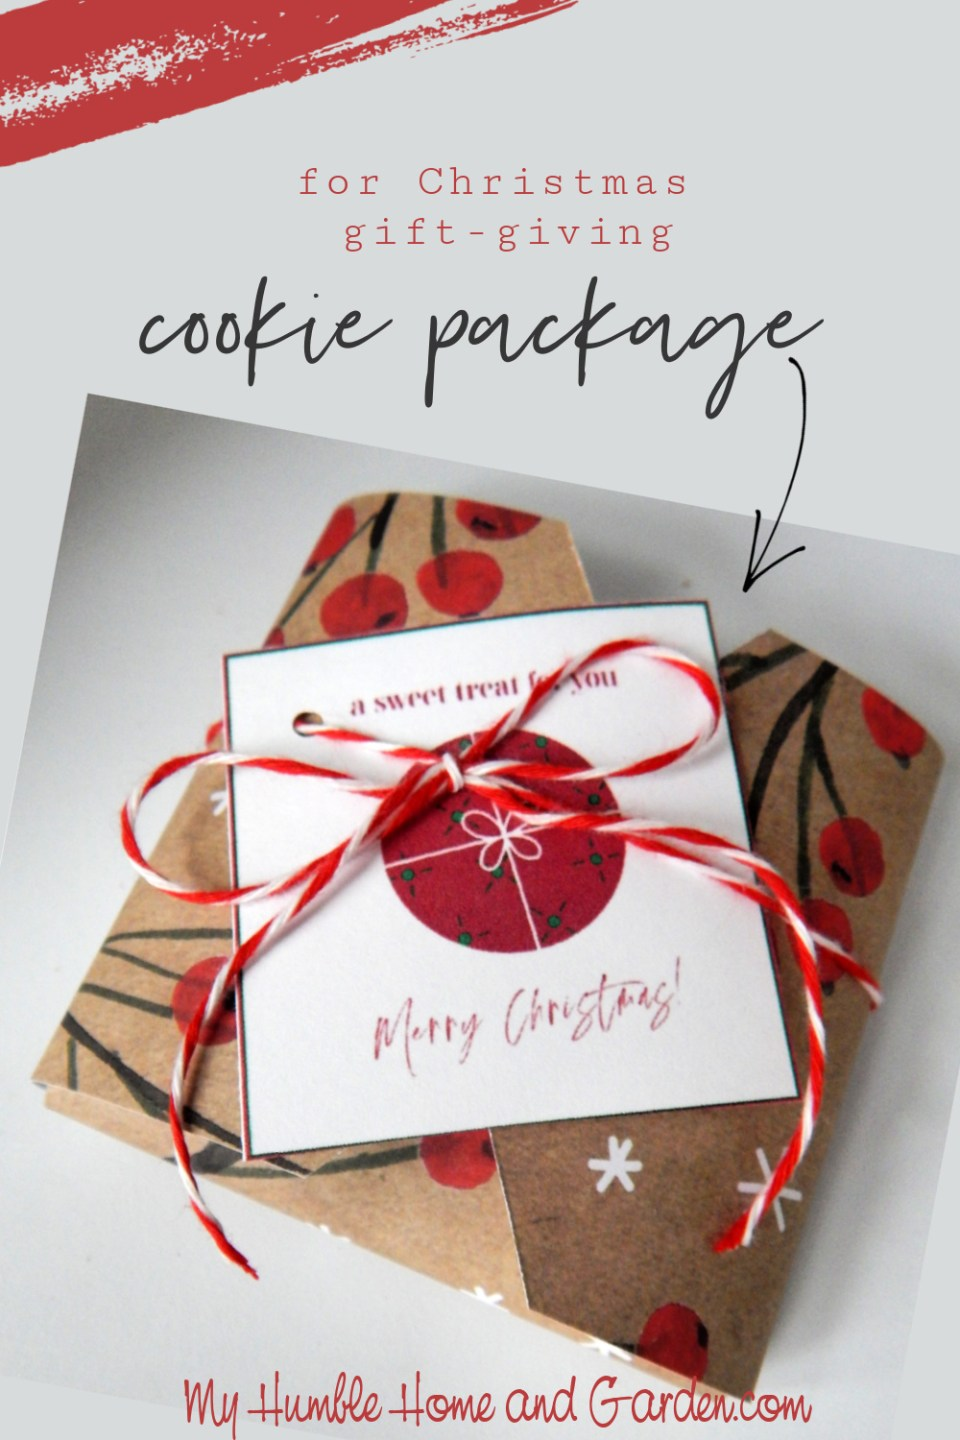 How To Package A Cookie For Christmas Gift-Giving